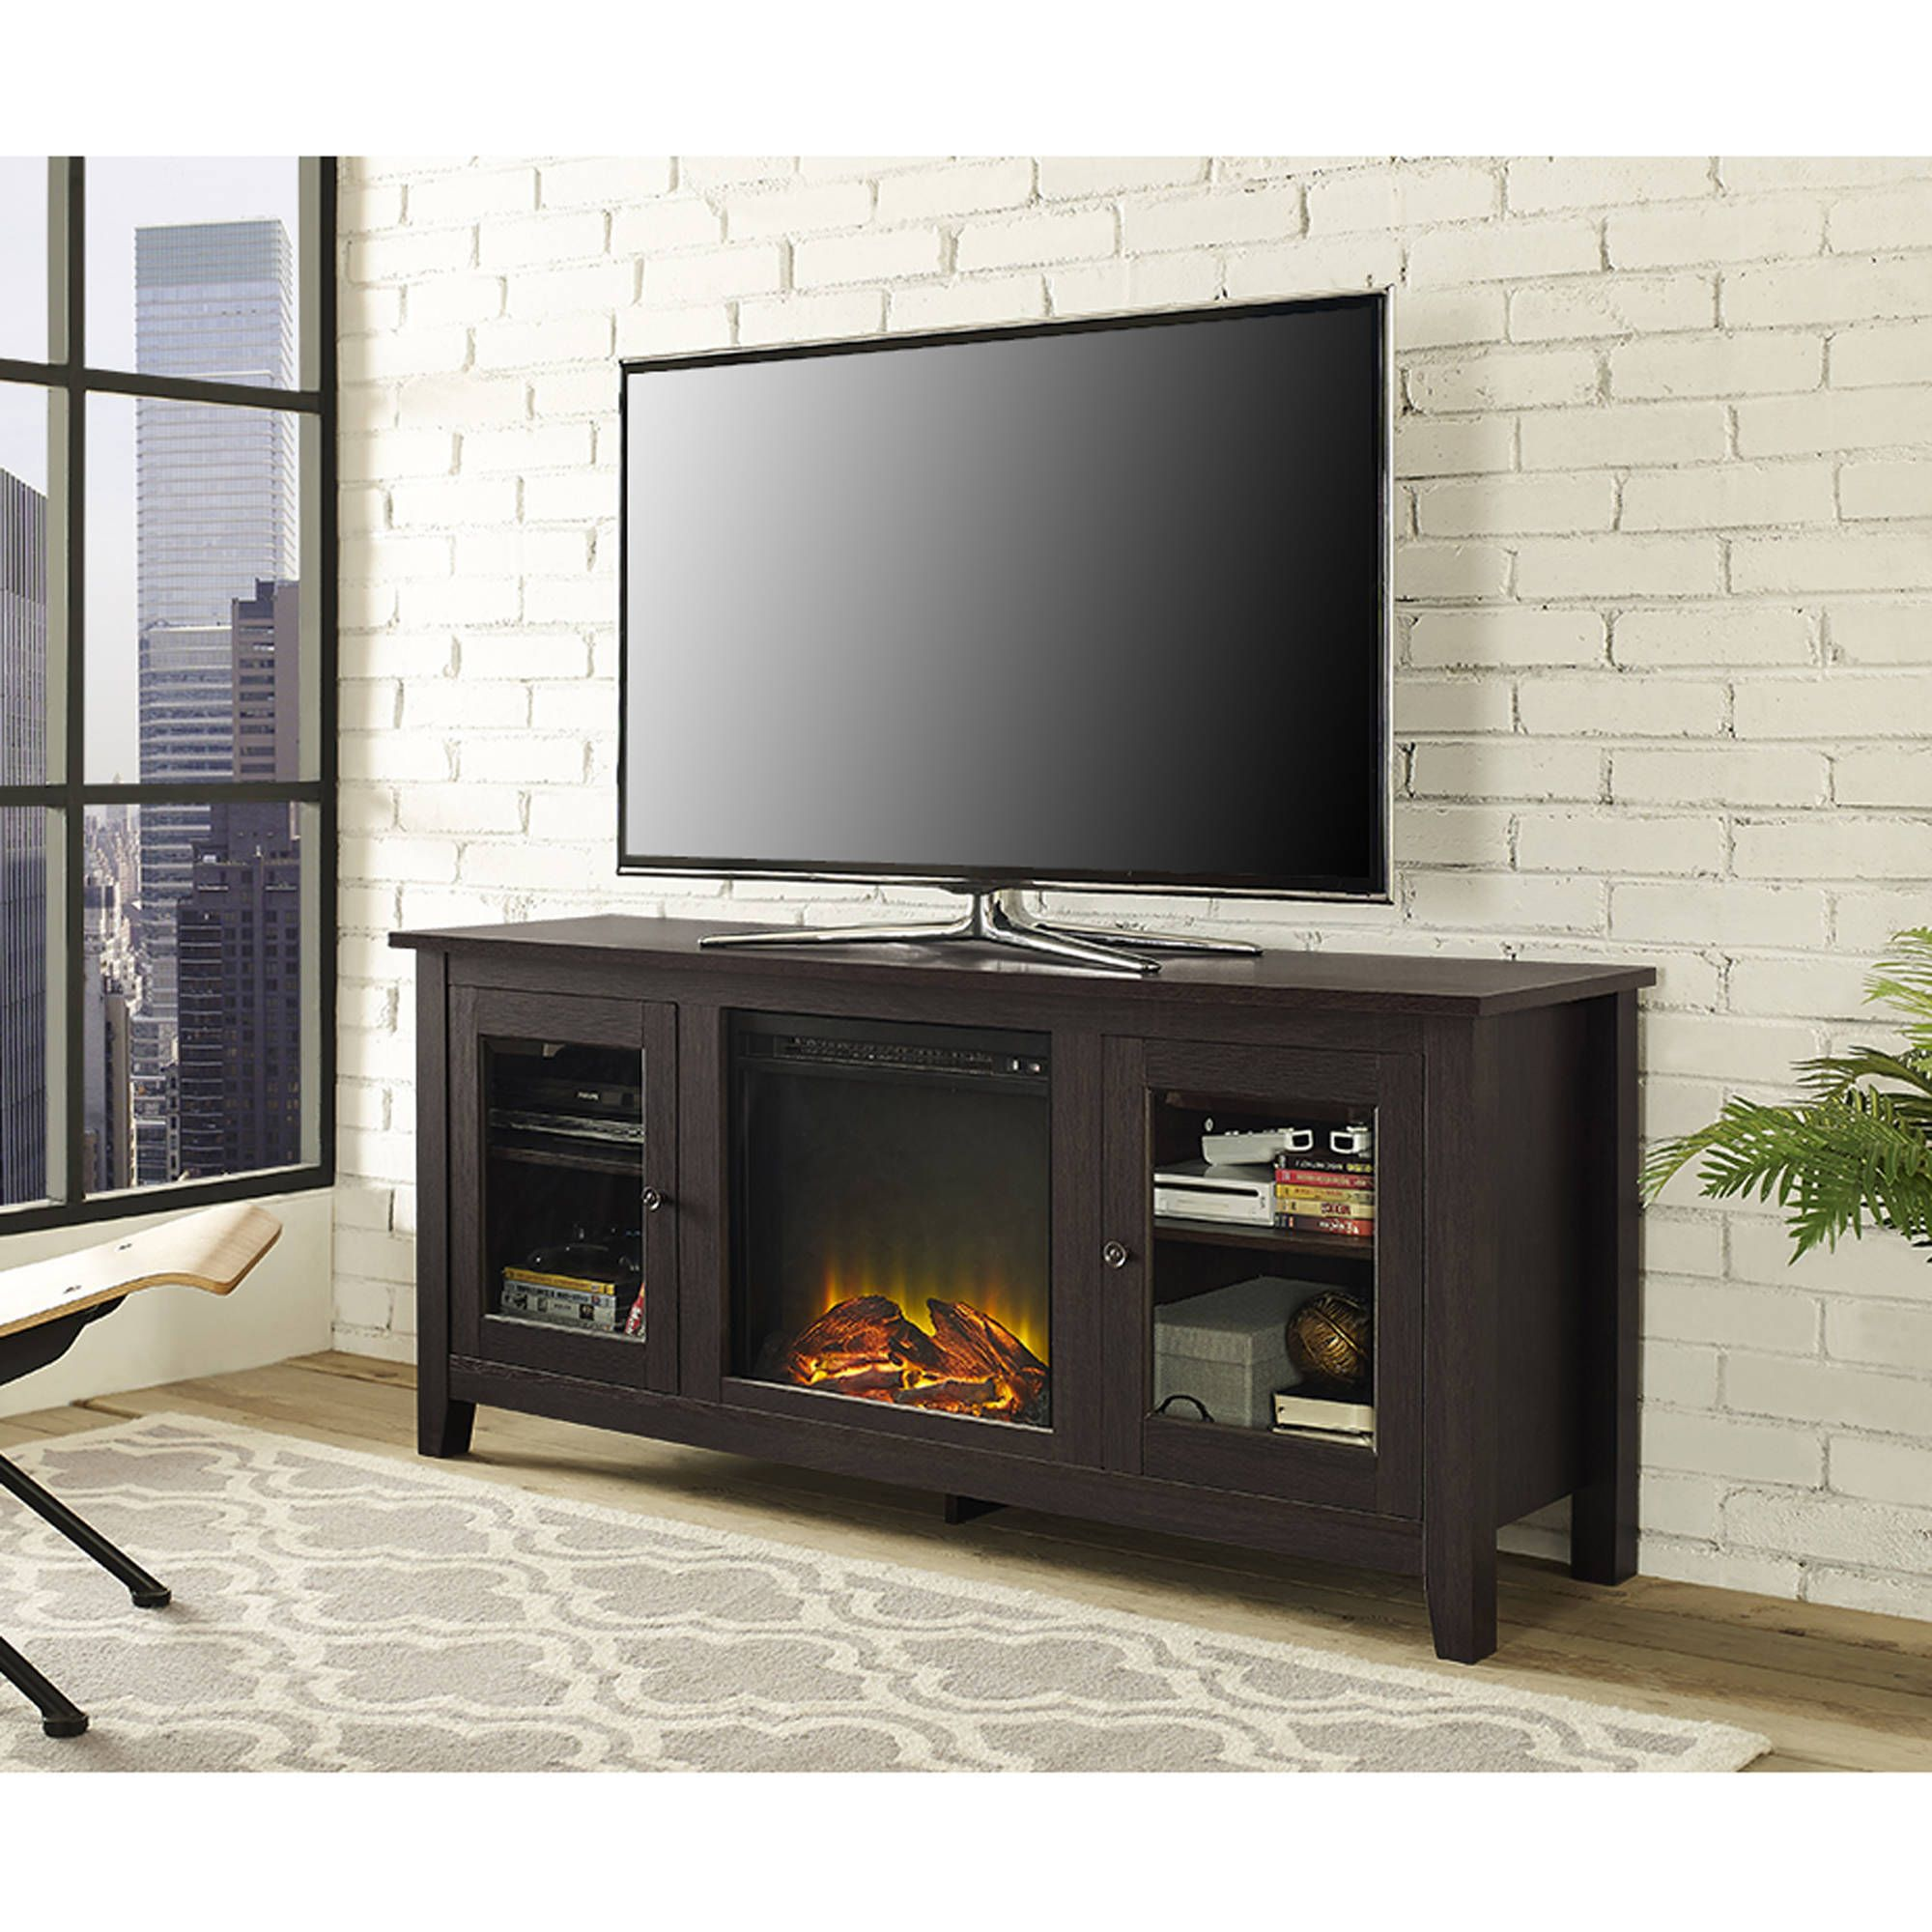 Wood Tv Stand With Fireplace For Tvs Up To 60 Multiple Finishes